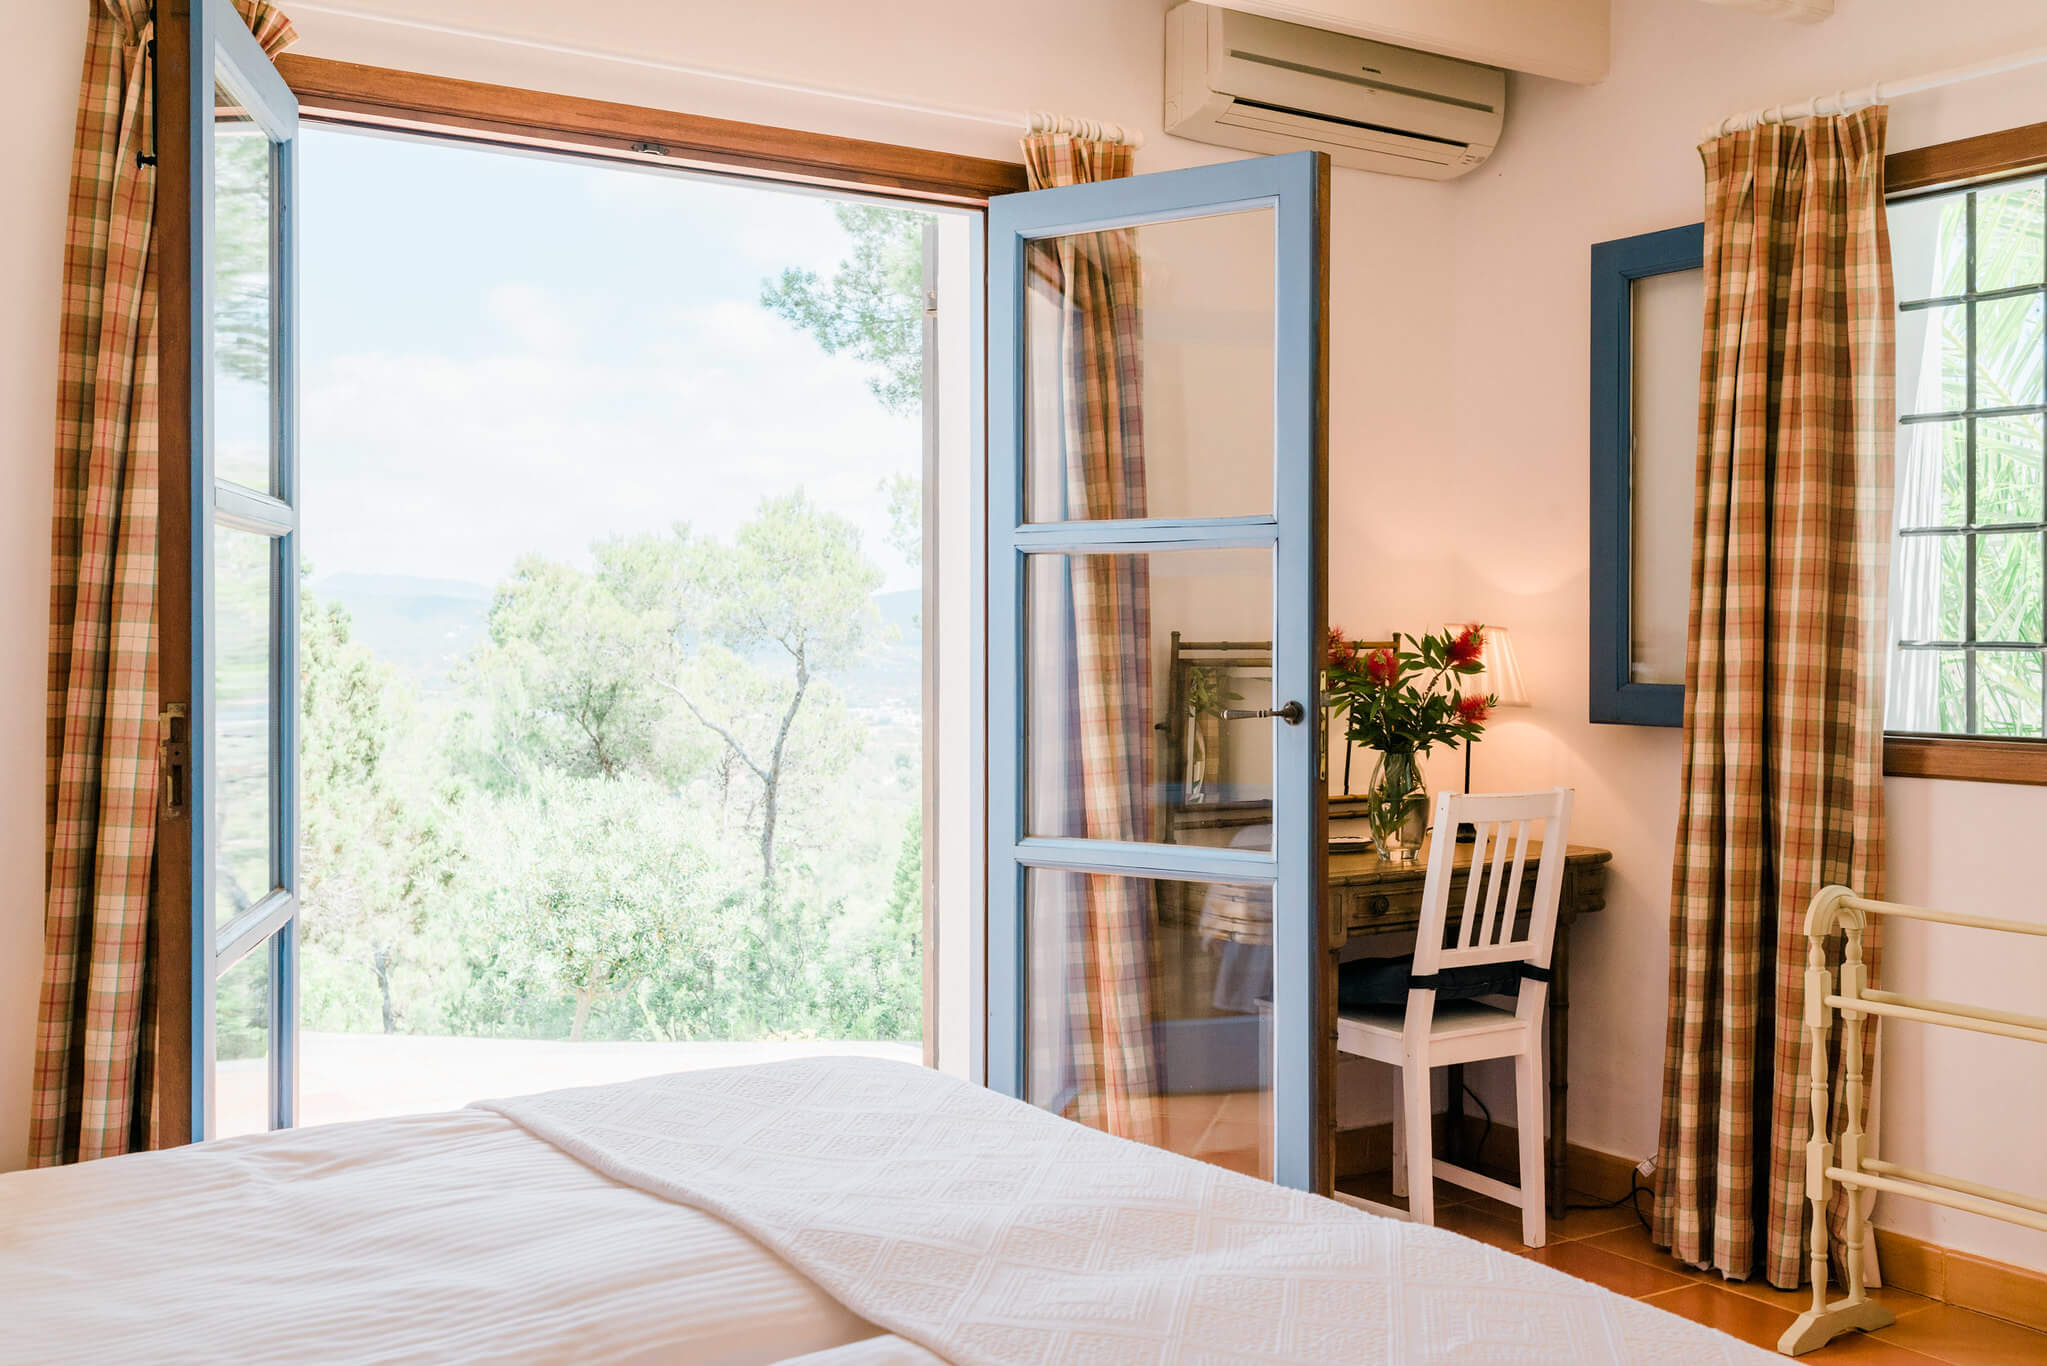 https://www.white-ibiza.com/wp-content/uploads/2020/07/whote-ibiza-villas-can-madea-bedroom-view-1.jpg